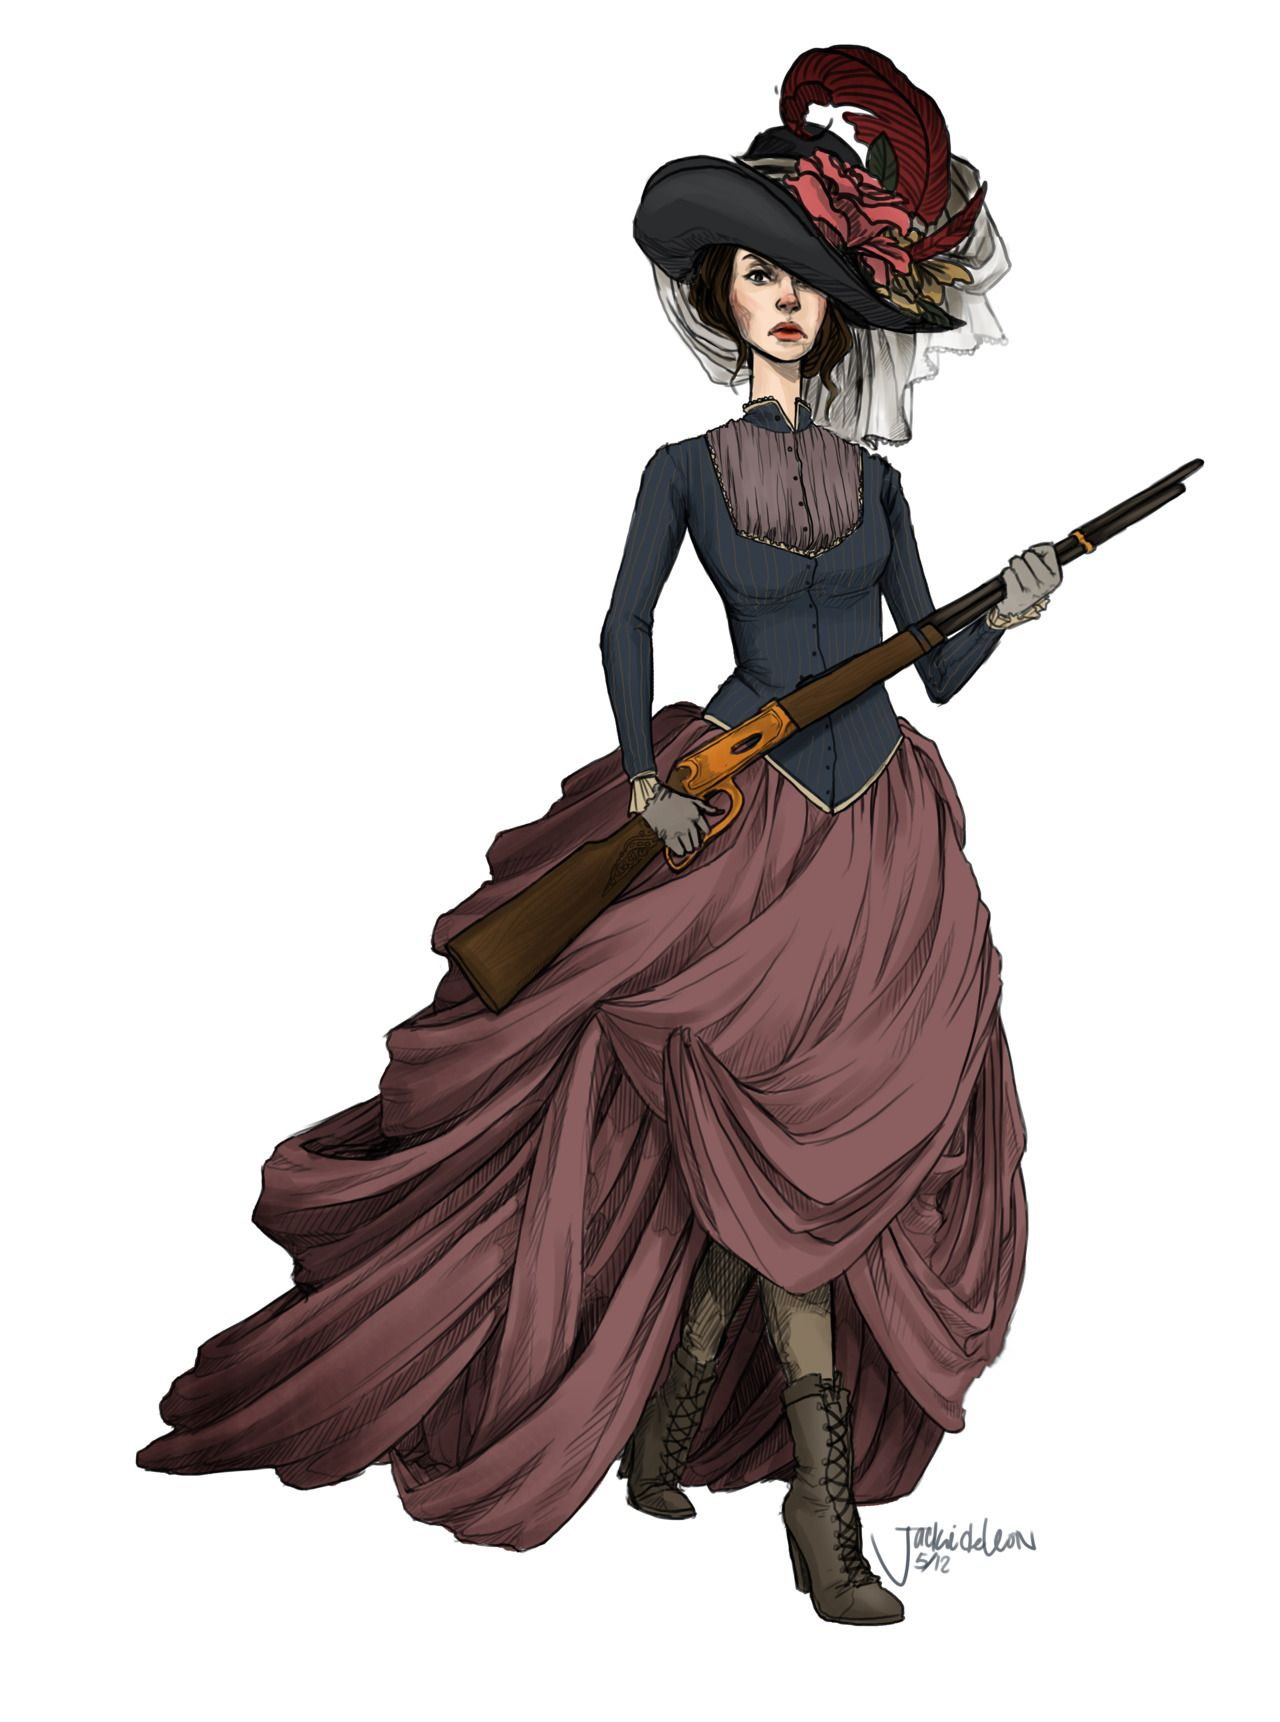 Thealcolyte Western Version Of The Princess